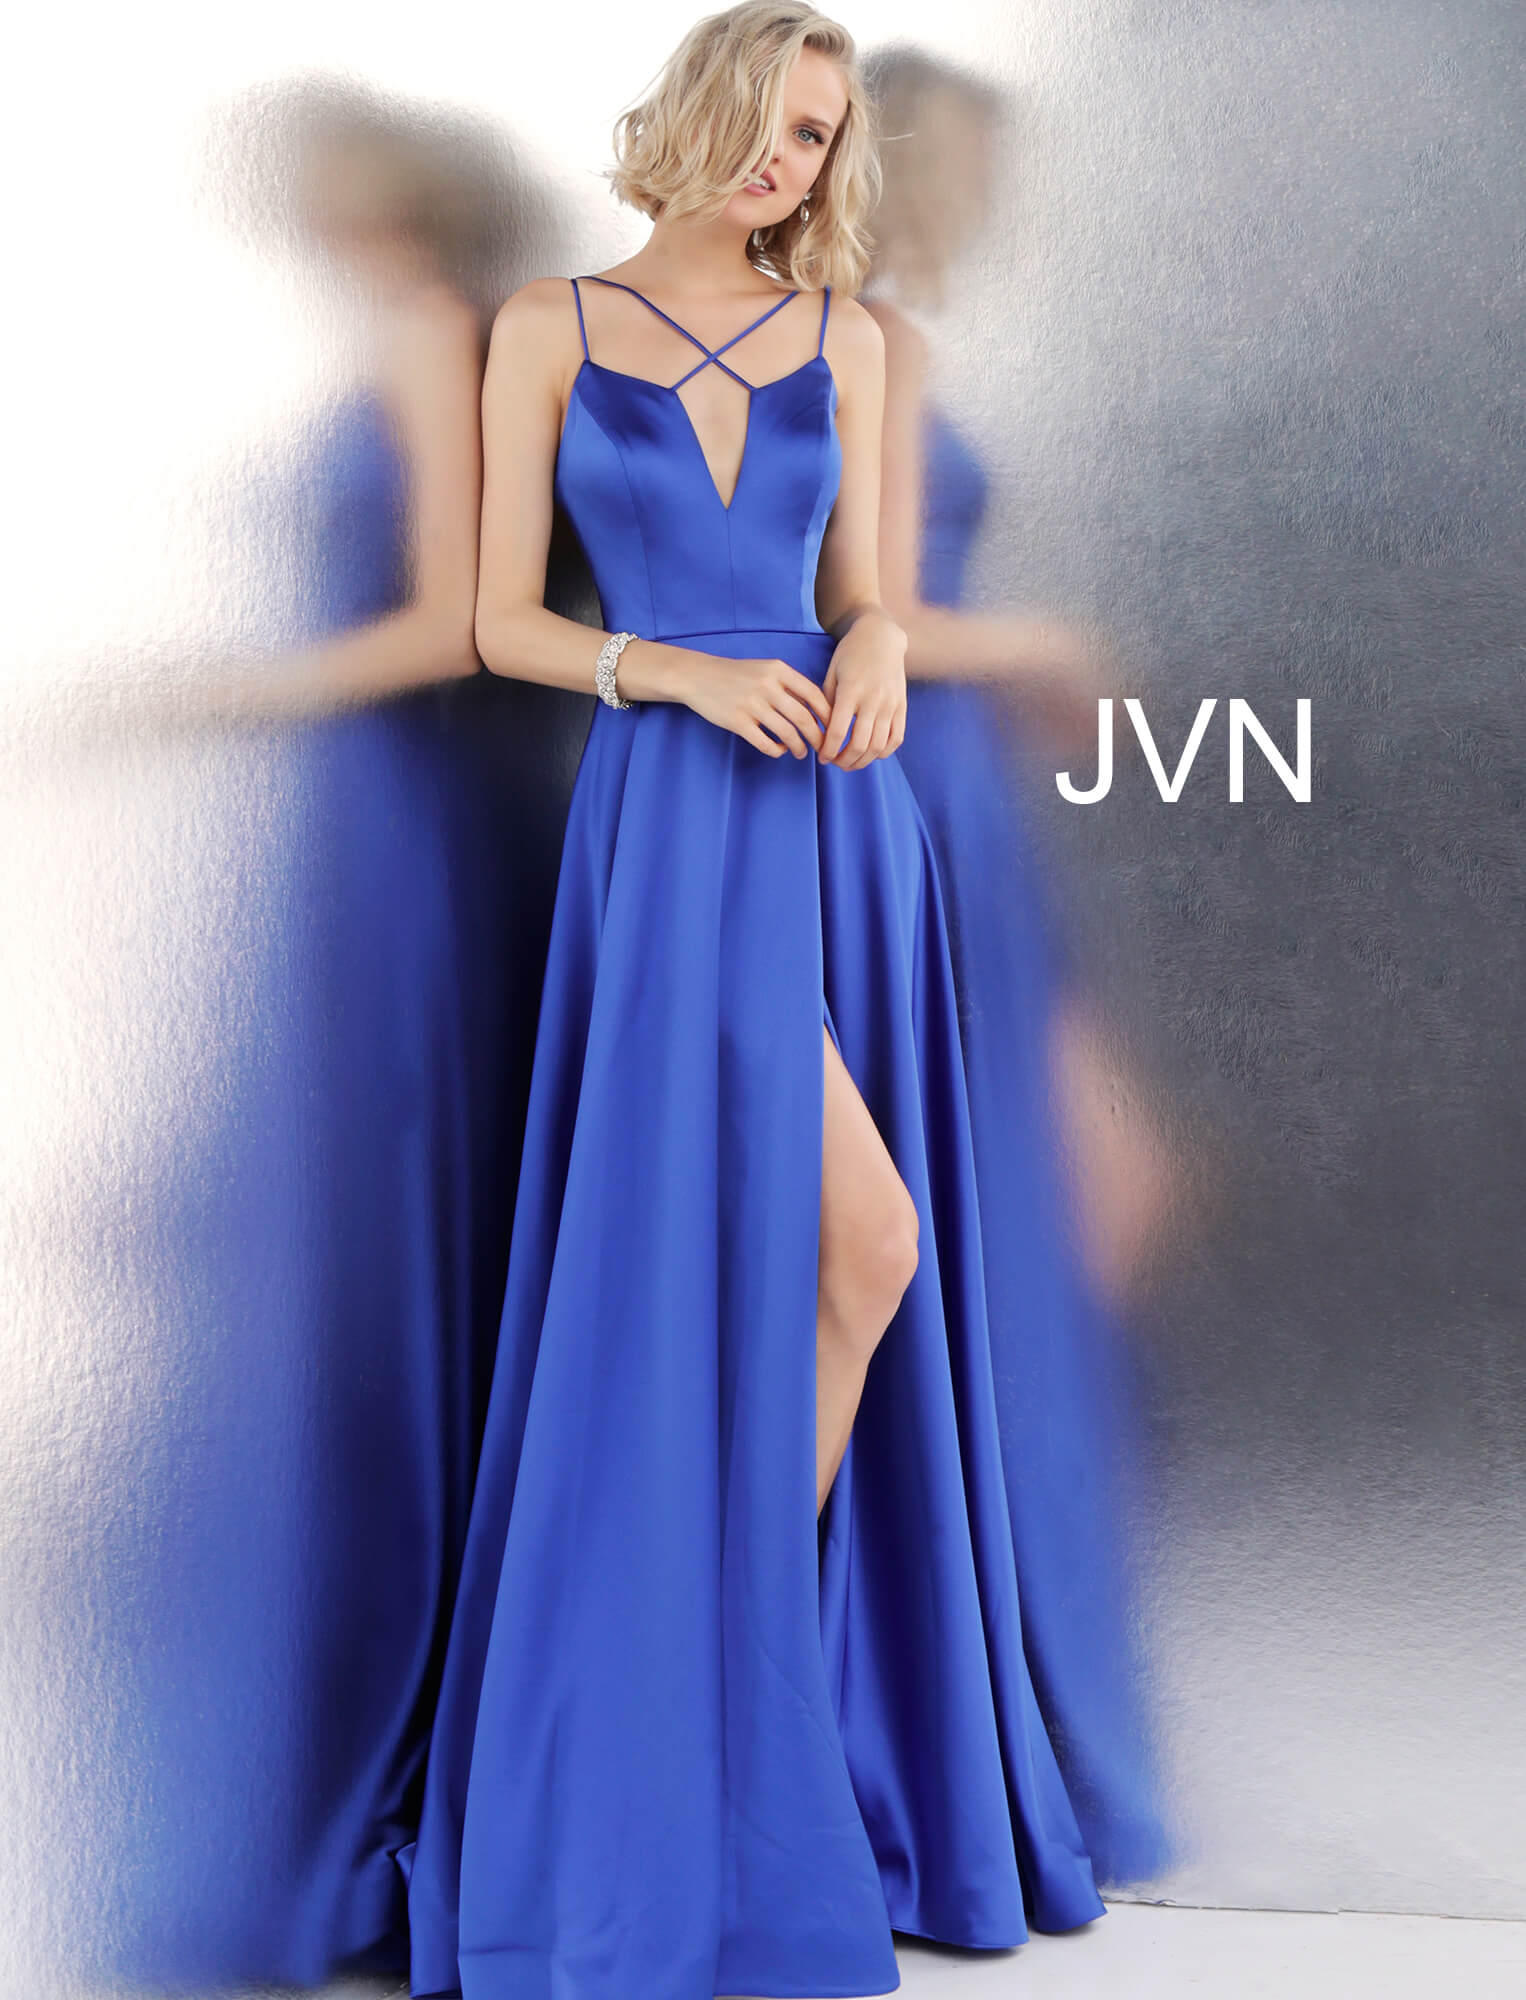 Jovani Blue Satin Gown - Gissings Boutique